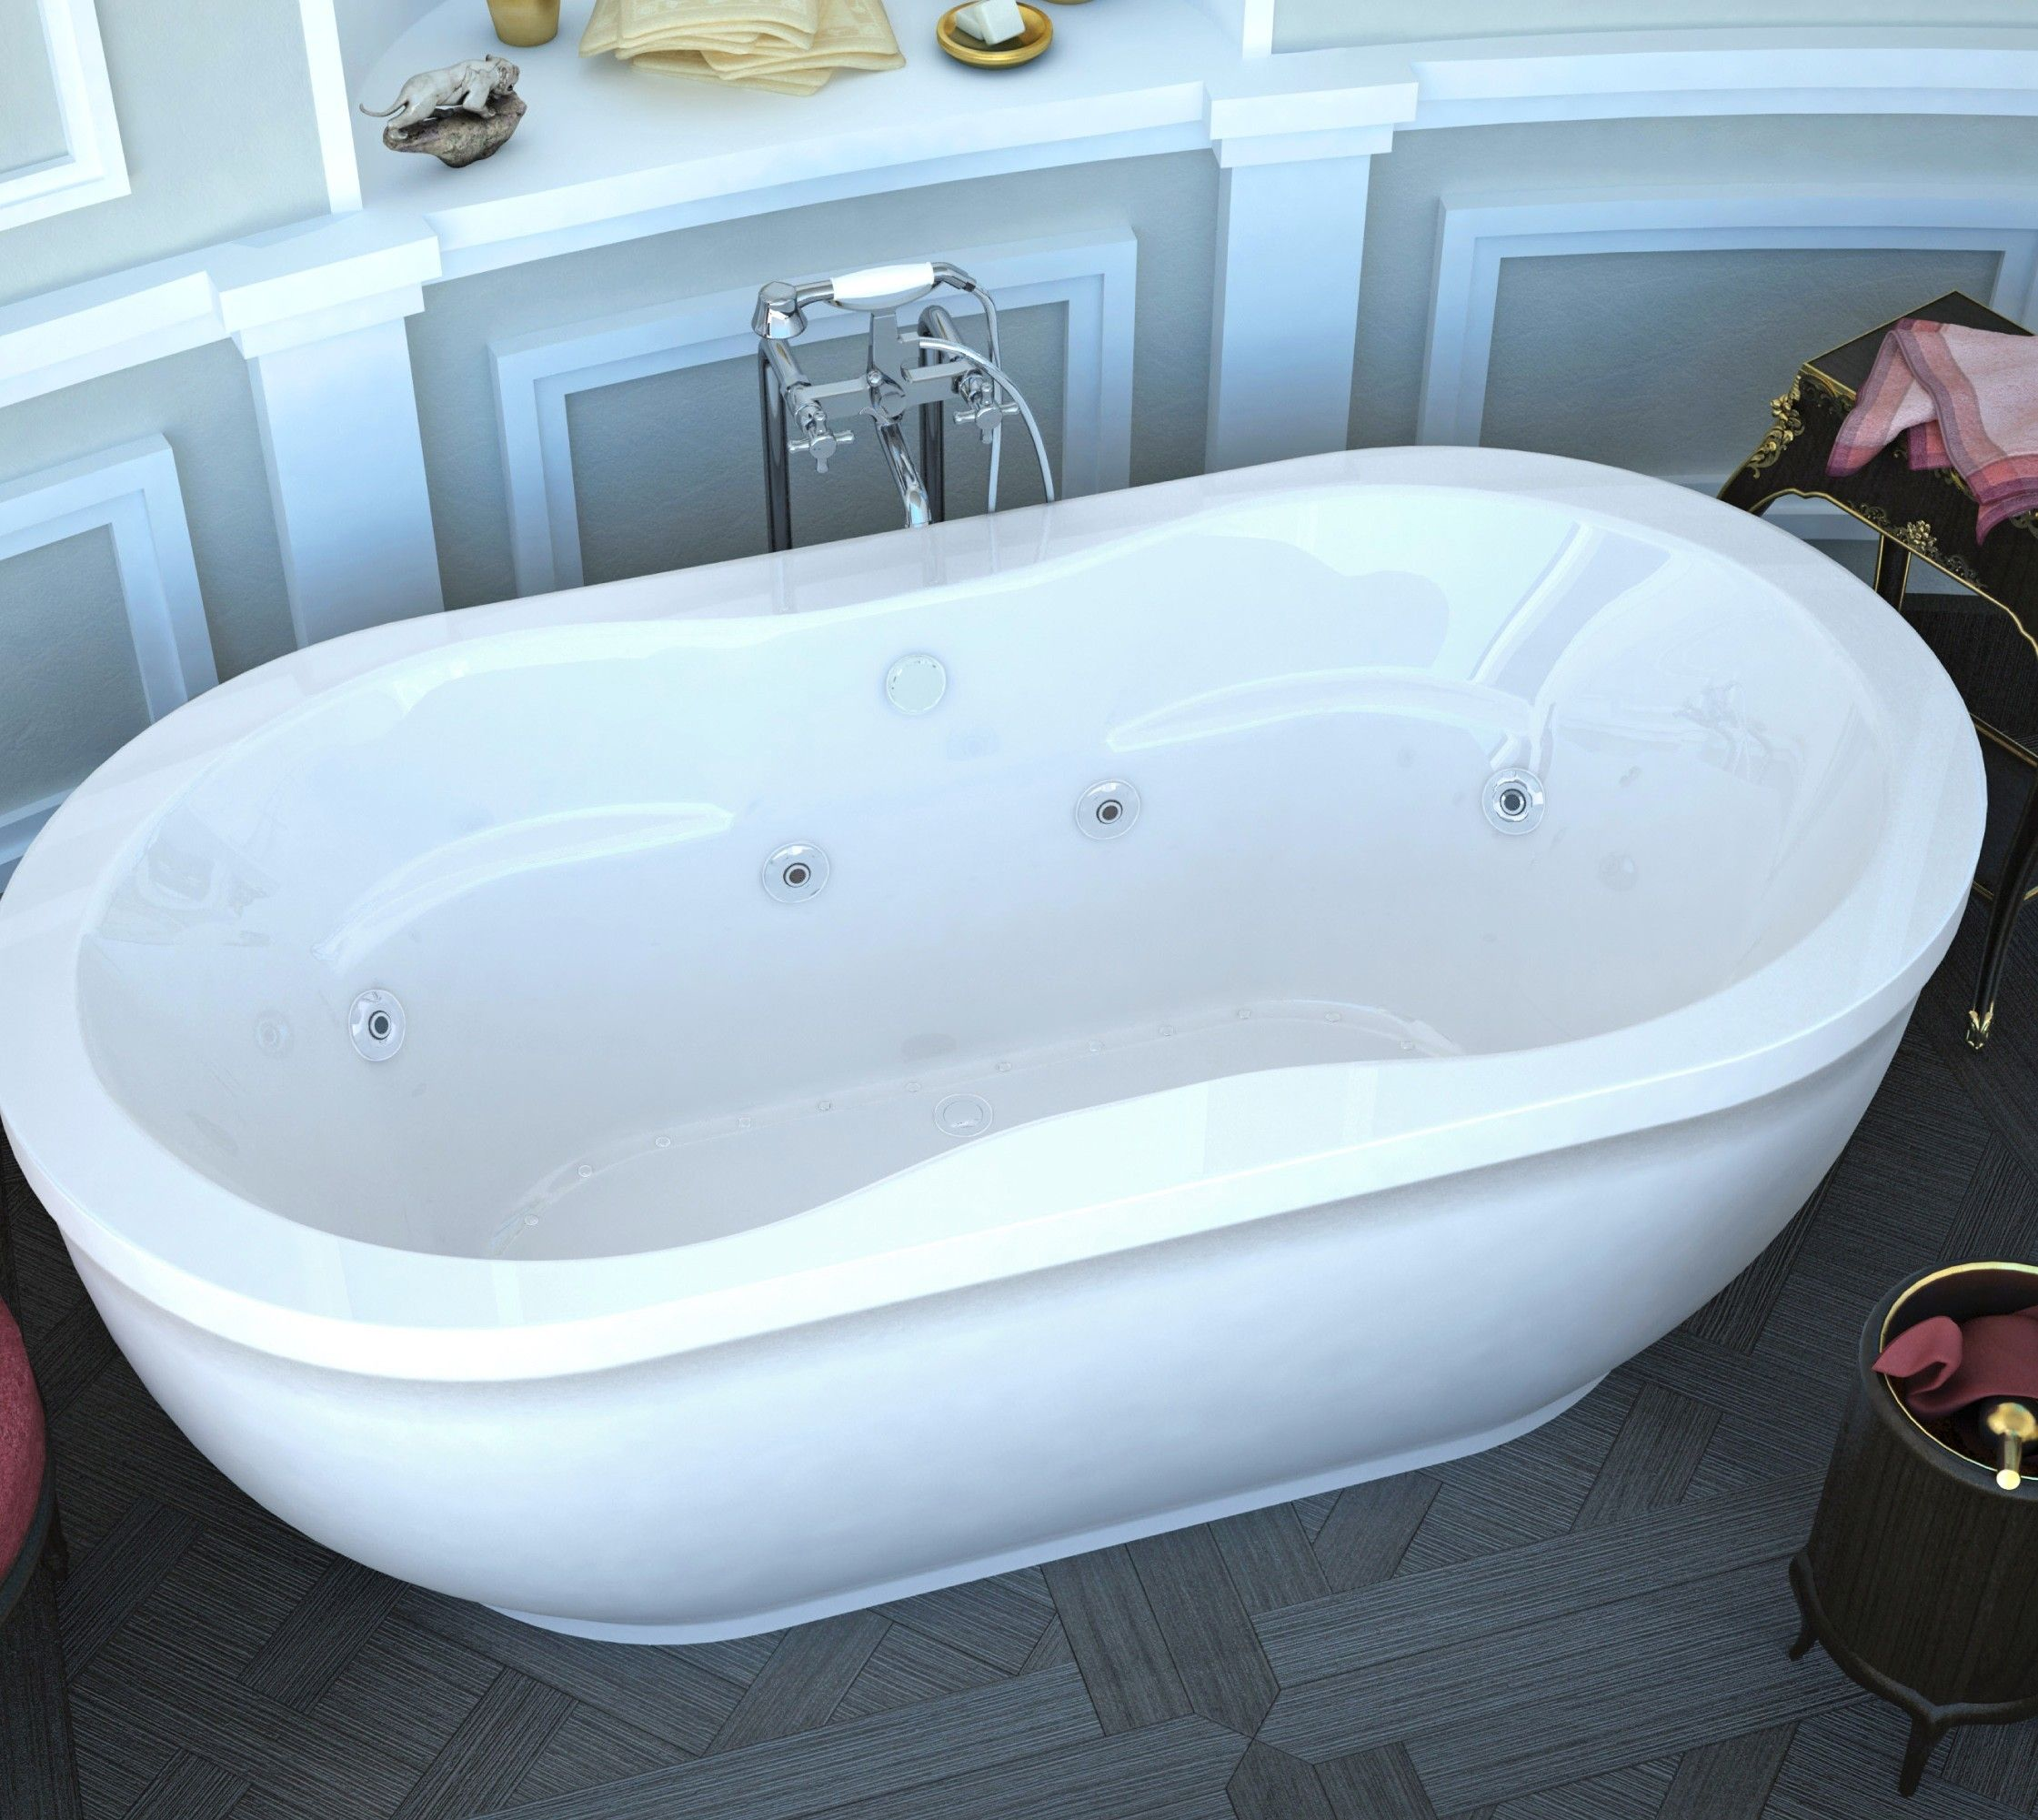 Monet 34x71-in. Freestanding Air & Whirlpool Jetted Bathtub - White ...